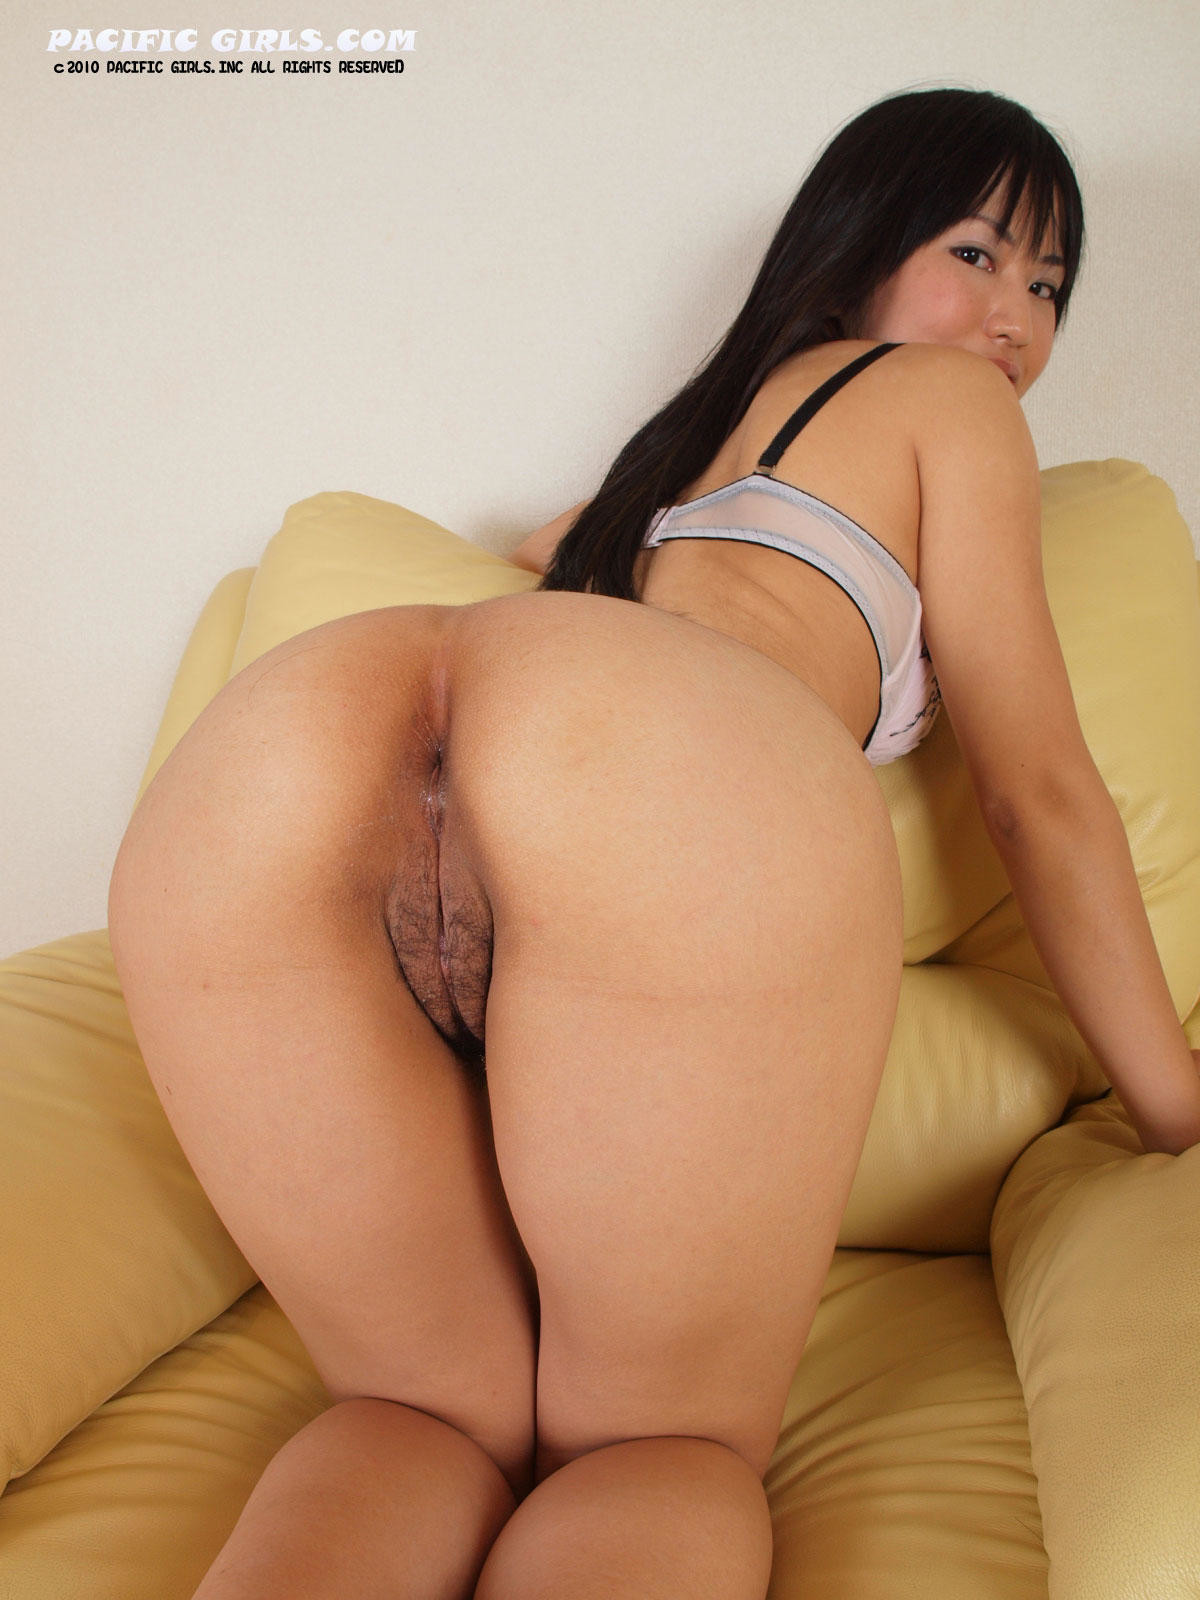 Thick booty asian women